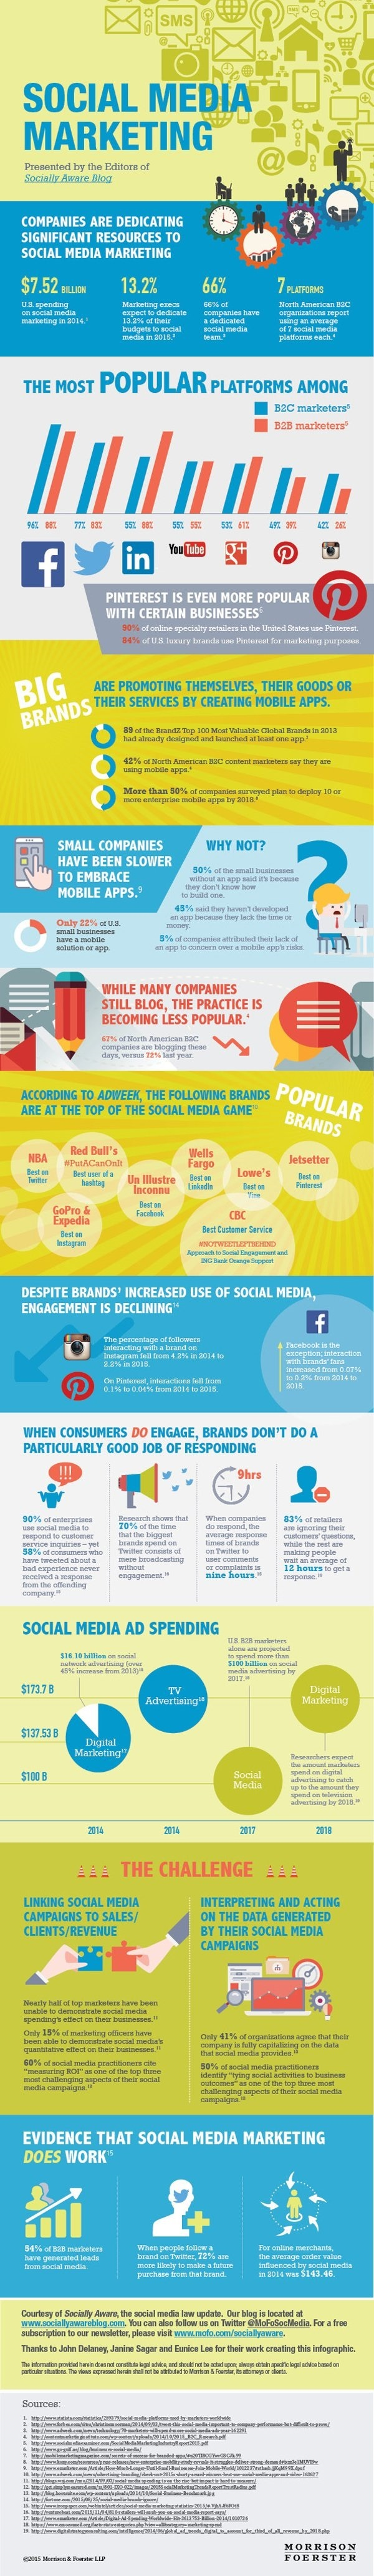 160104-social-media-marketing-infographic